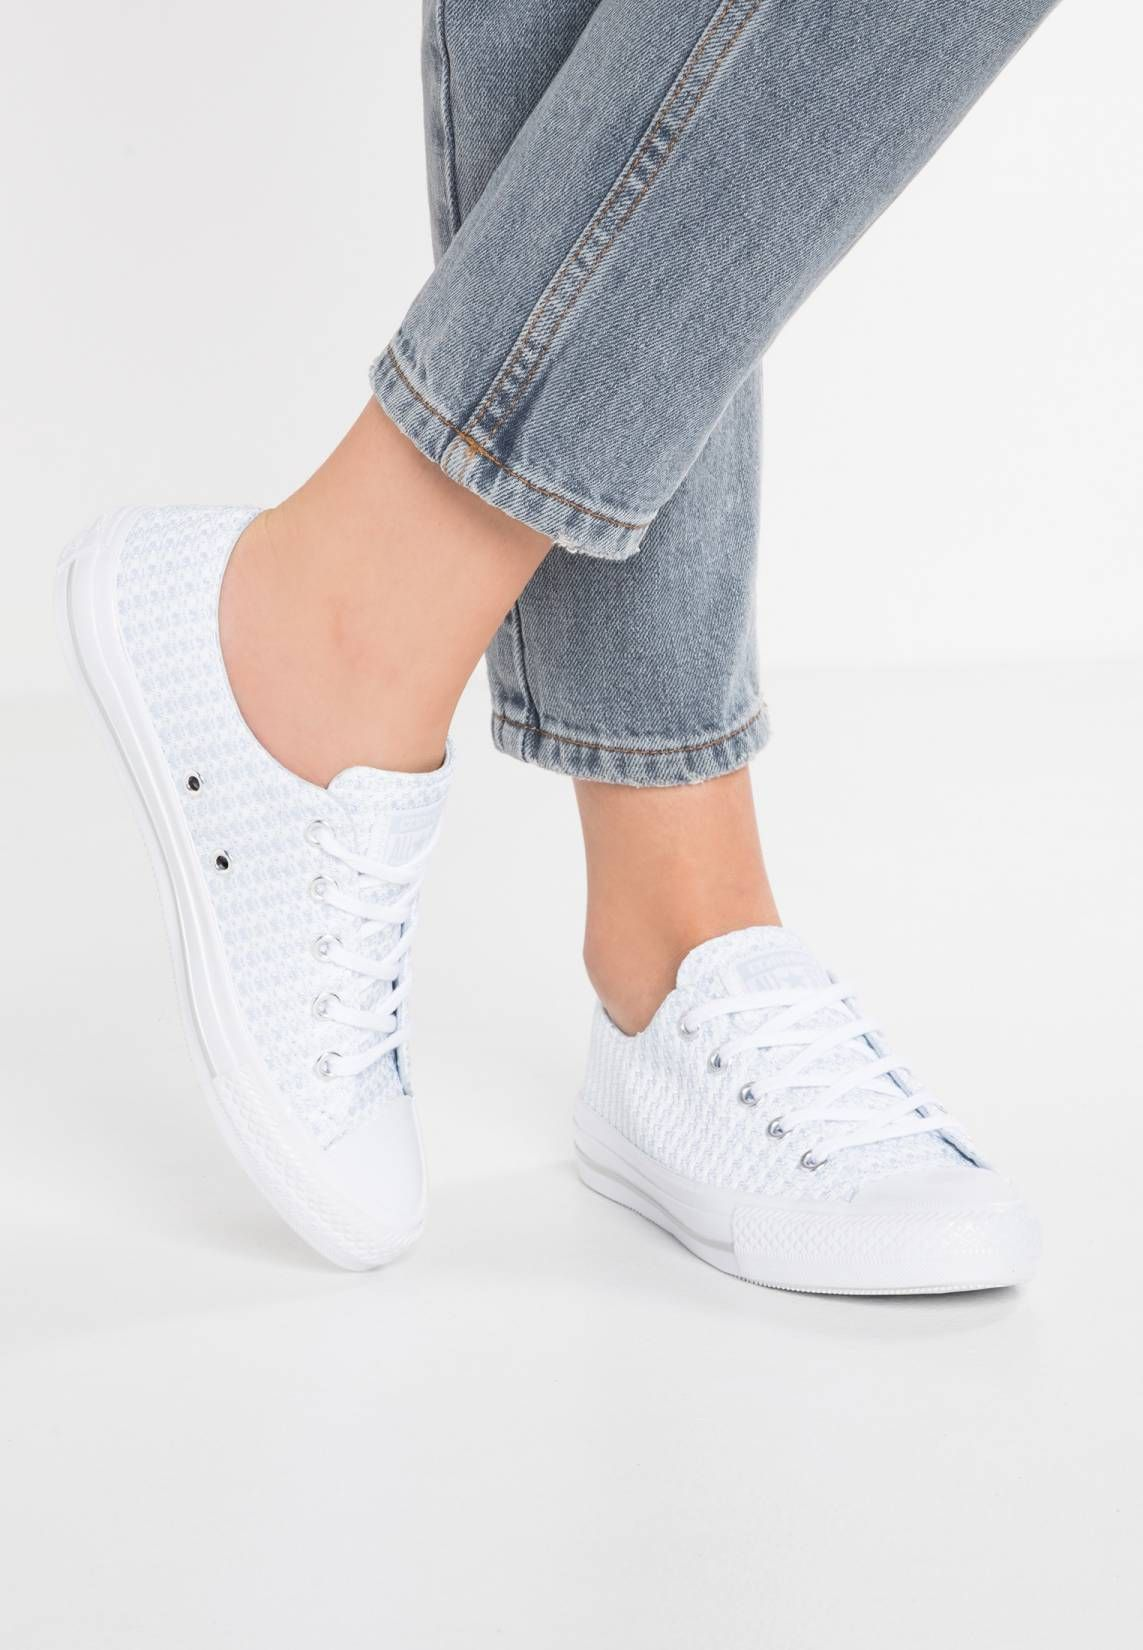 377bdae4d404 Converse. CHUCK TAYLOR ALL STAR GEMMA - Sneaker low - porpoise white mouse blau.  Sohle Kunststoff. Decksohle Textil. Innenmaterial Textil.